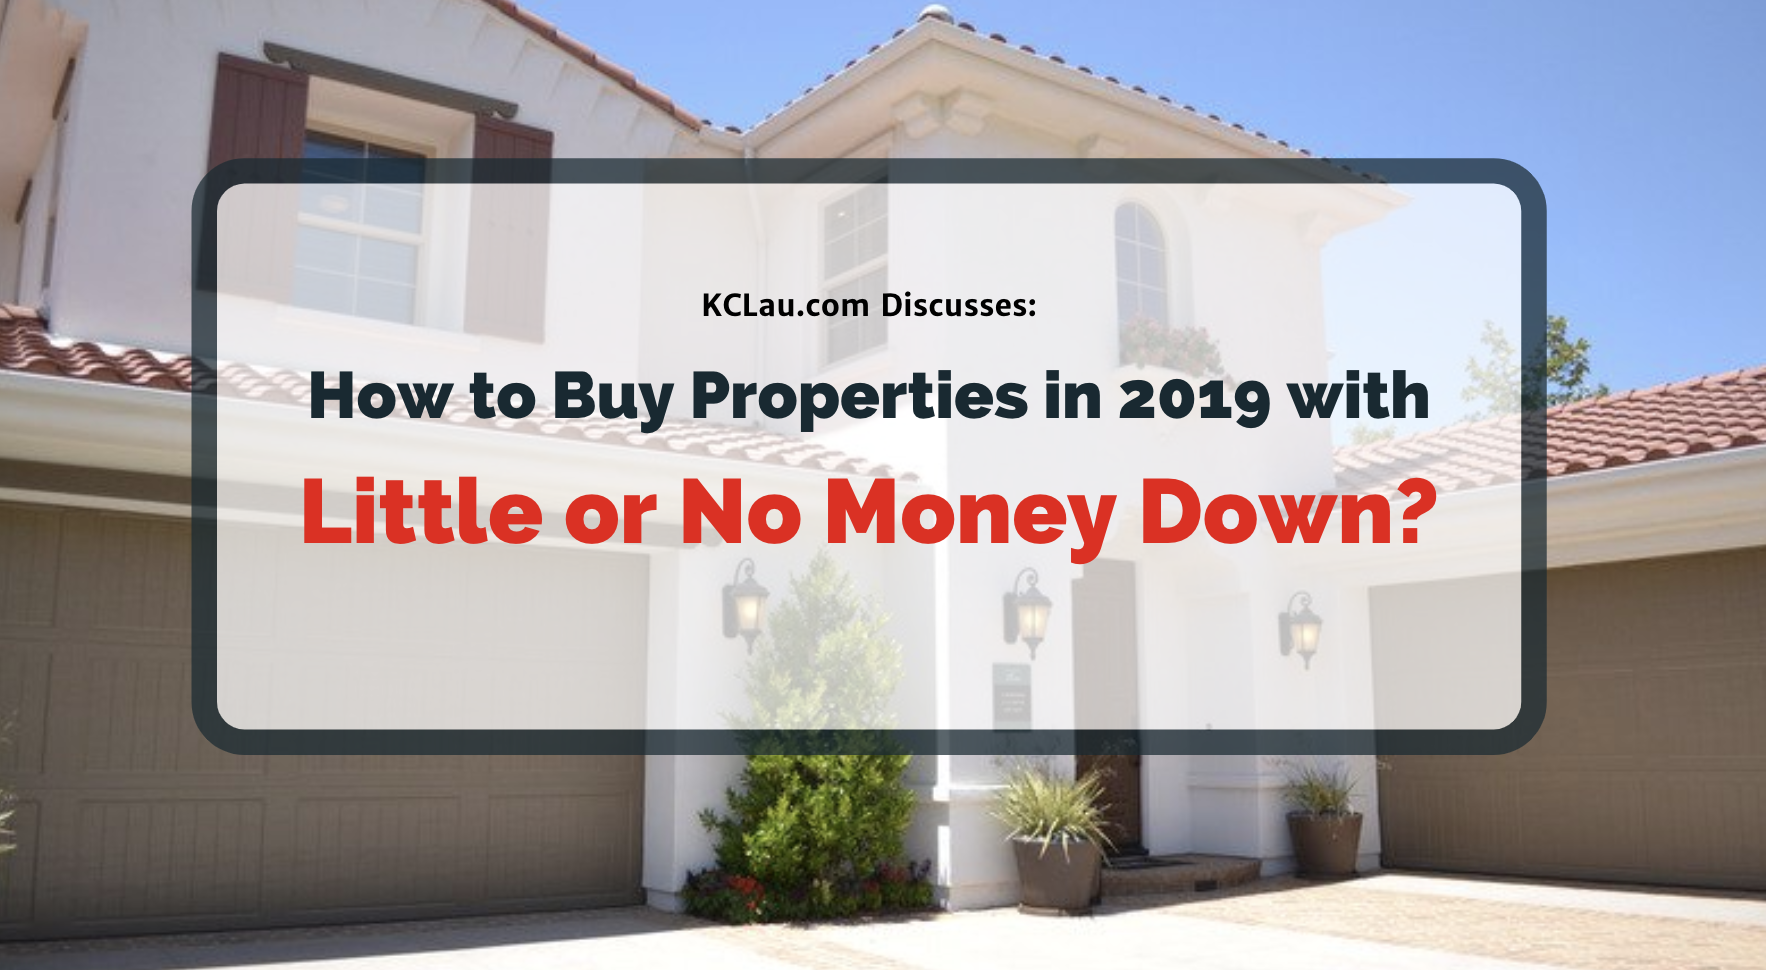 How to Buy Properties in 2019 with Little or No Money Down?